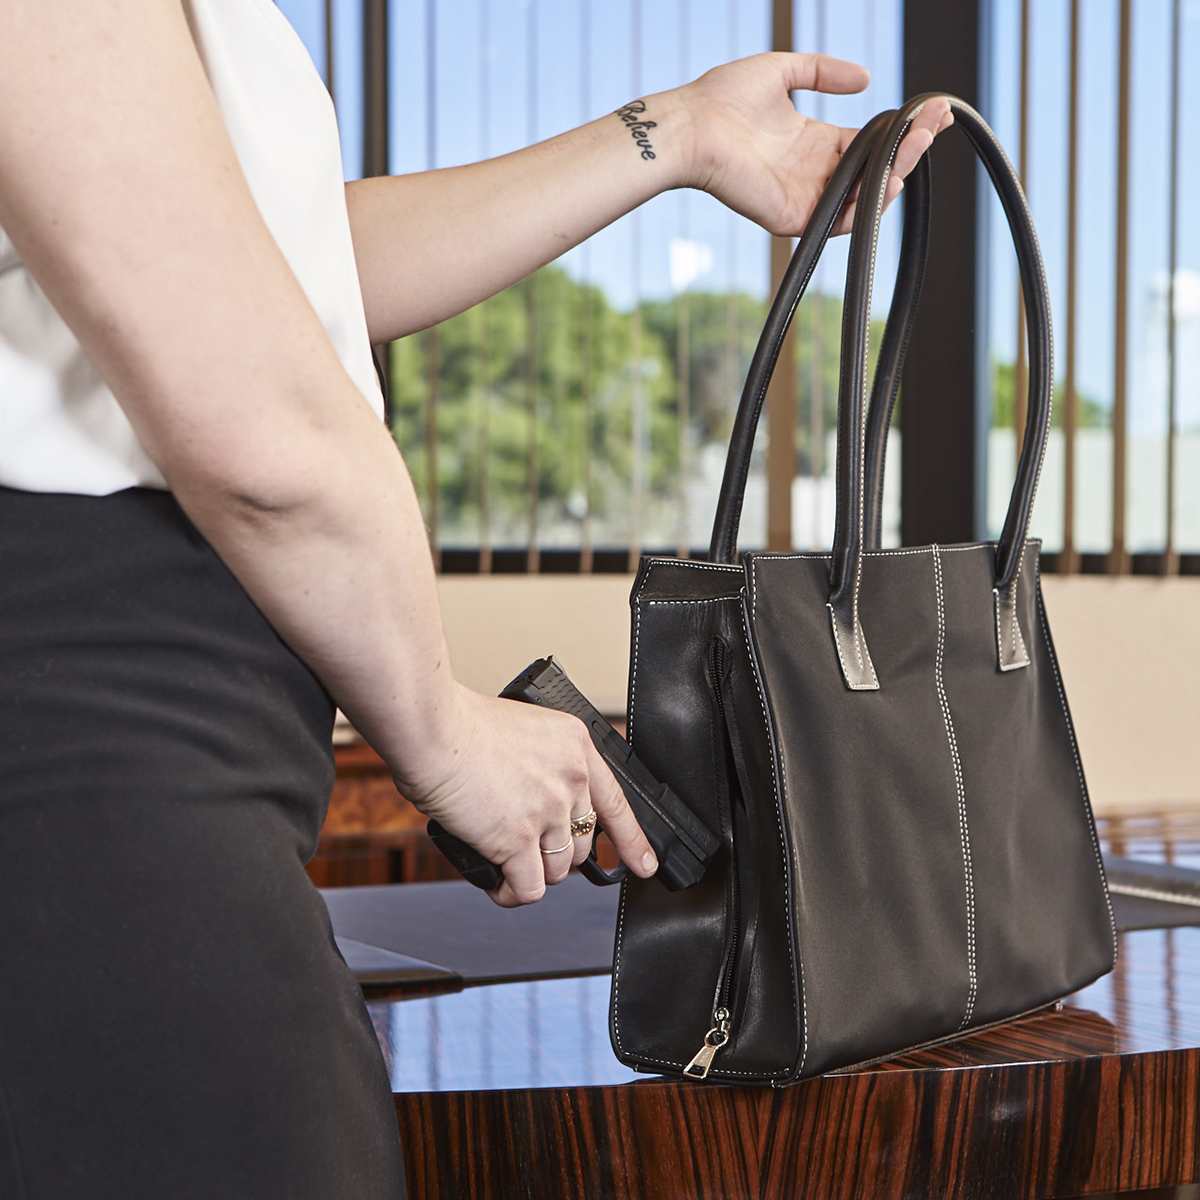 "Another handbag option that's a little higher-end, this ""Metropolitan"" model carries a $300 MSRP versus $190 for the ""Dyna"" shown above."